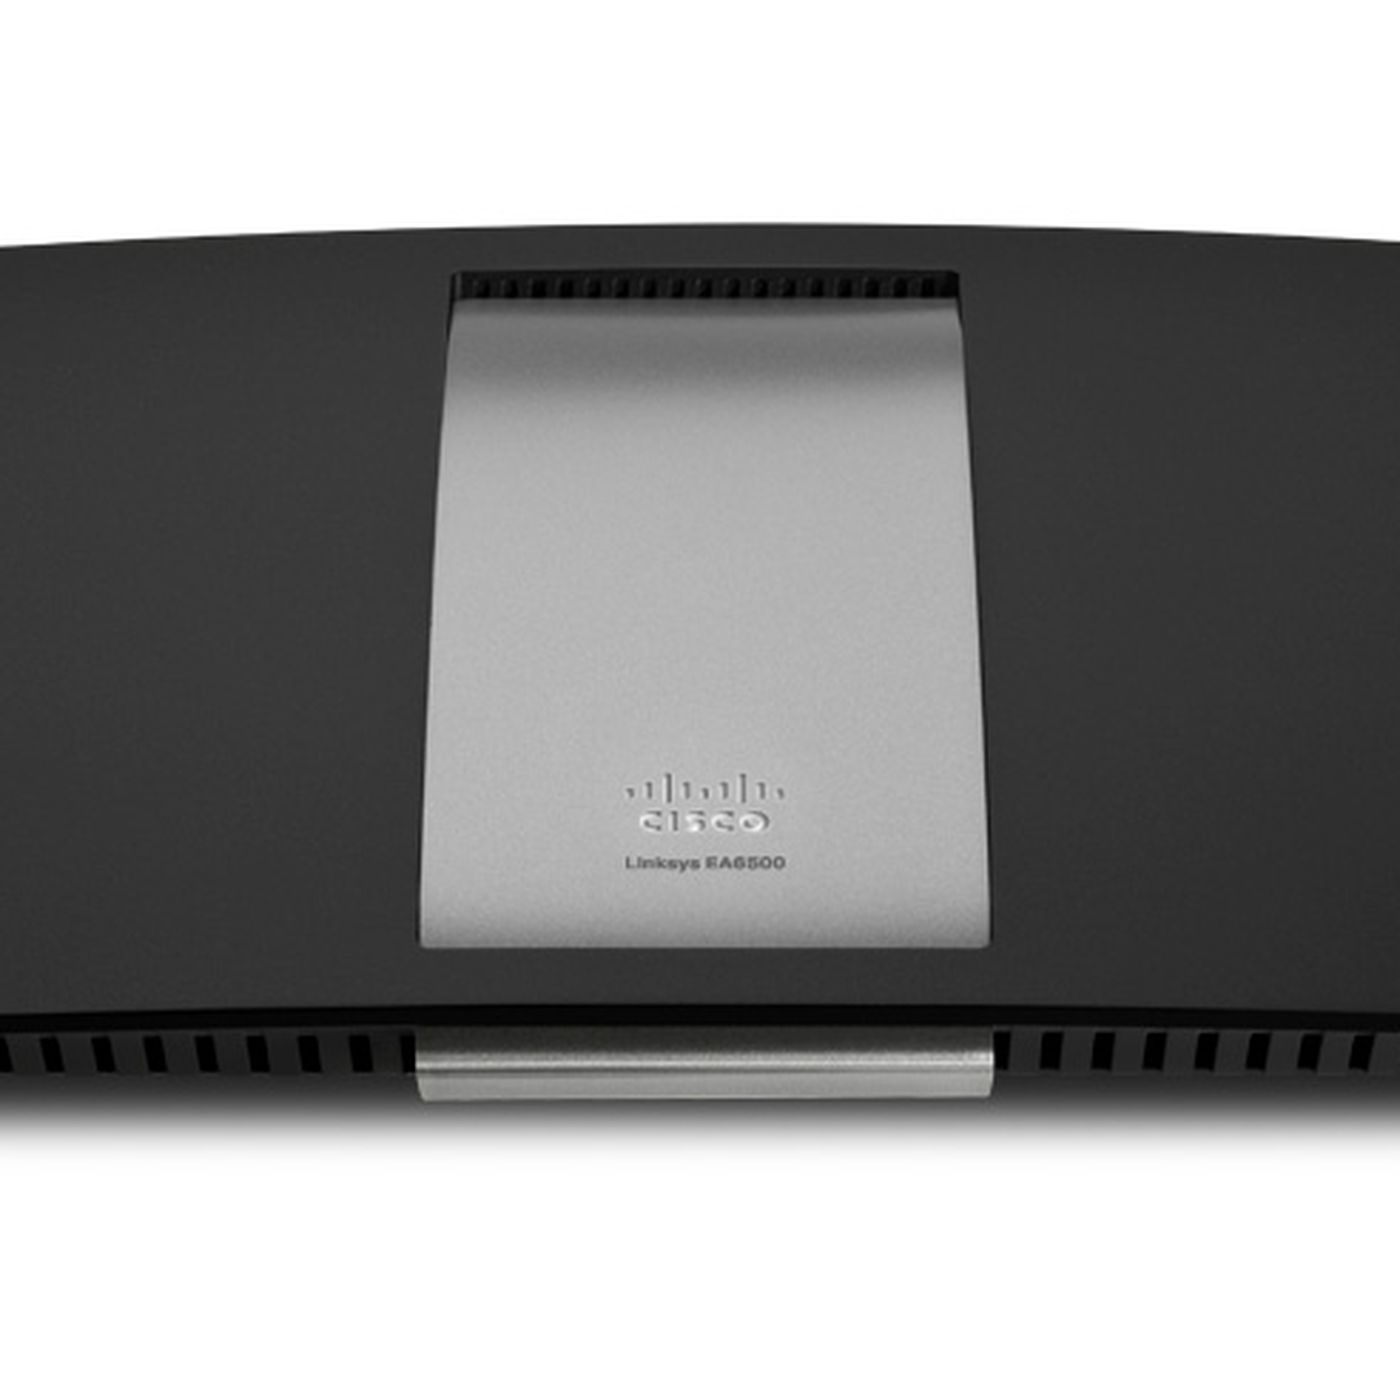 Cisco announces the EA6500, its first 802 11ac router, and